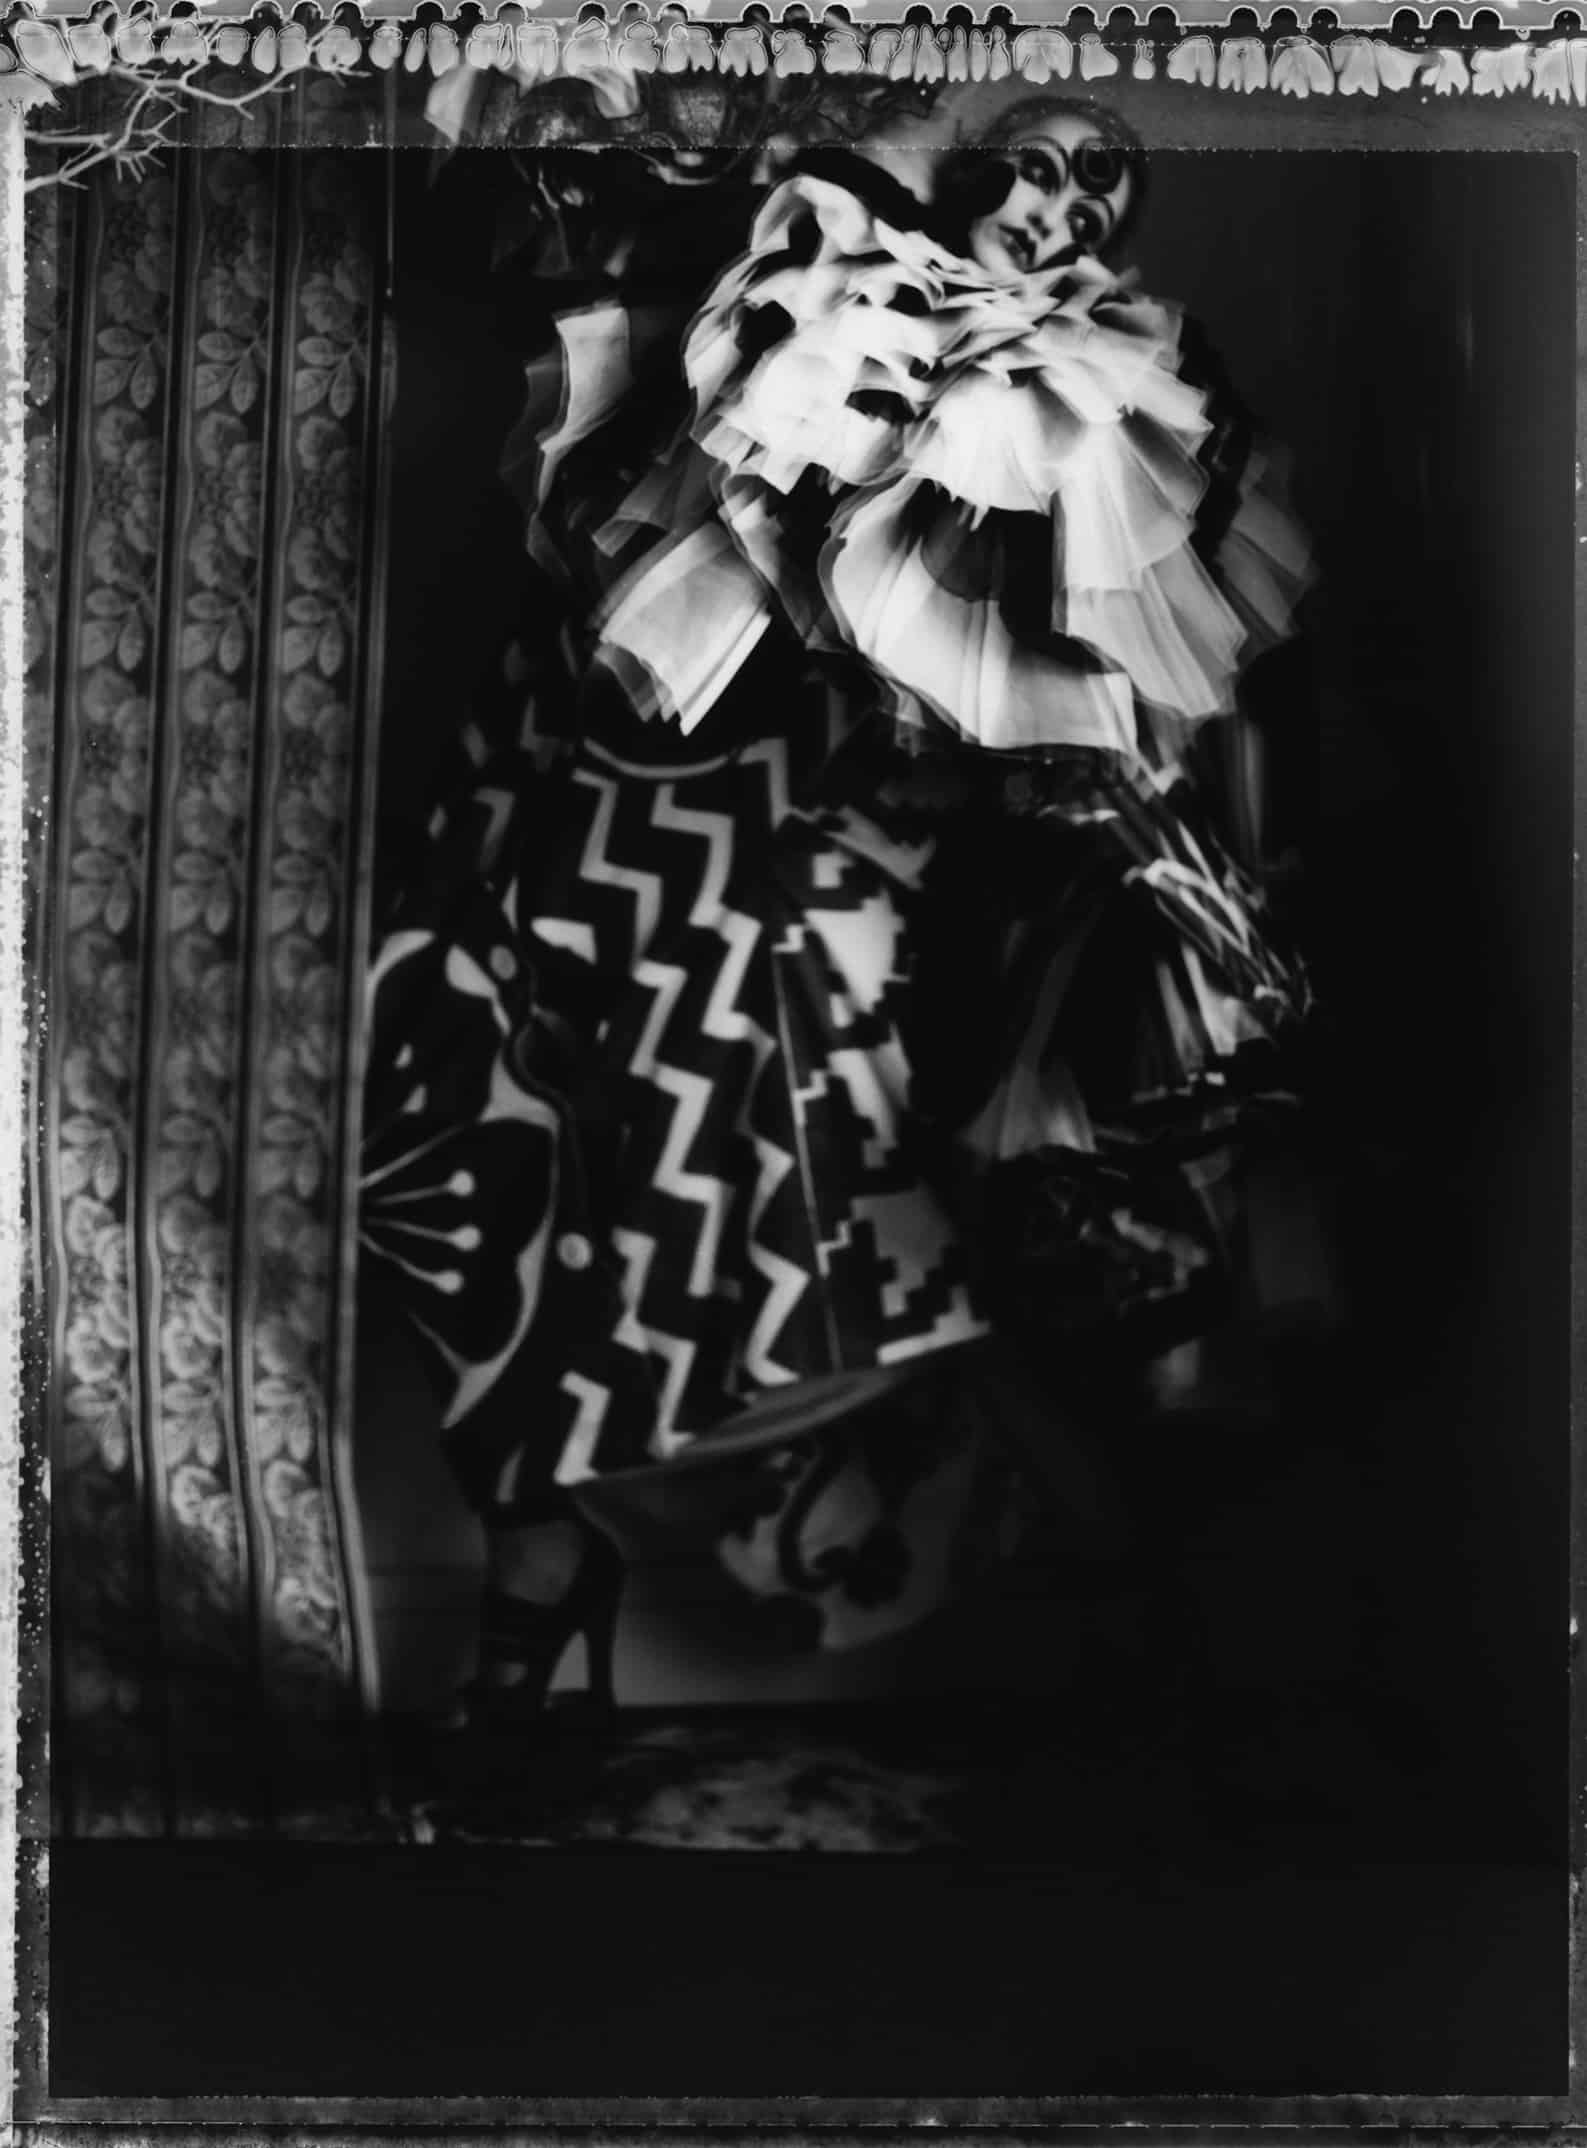 Fine art b/w photography of a fashion model wearing haute couture by DIOR by John Galliano.